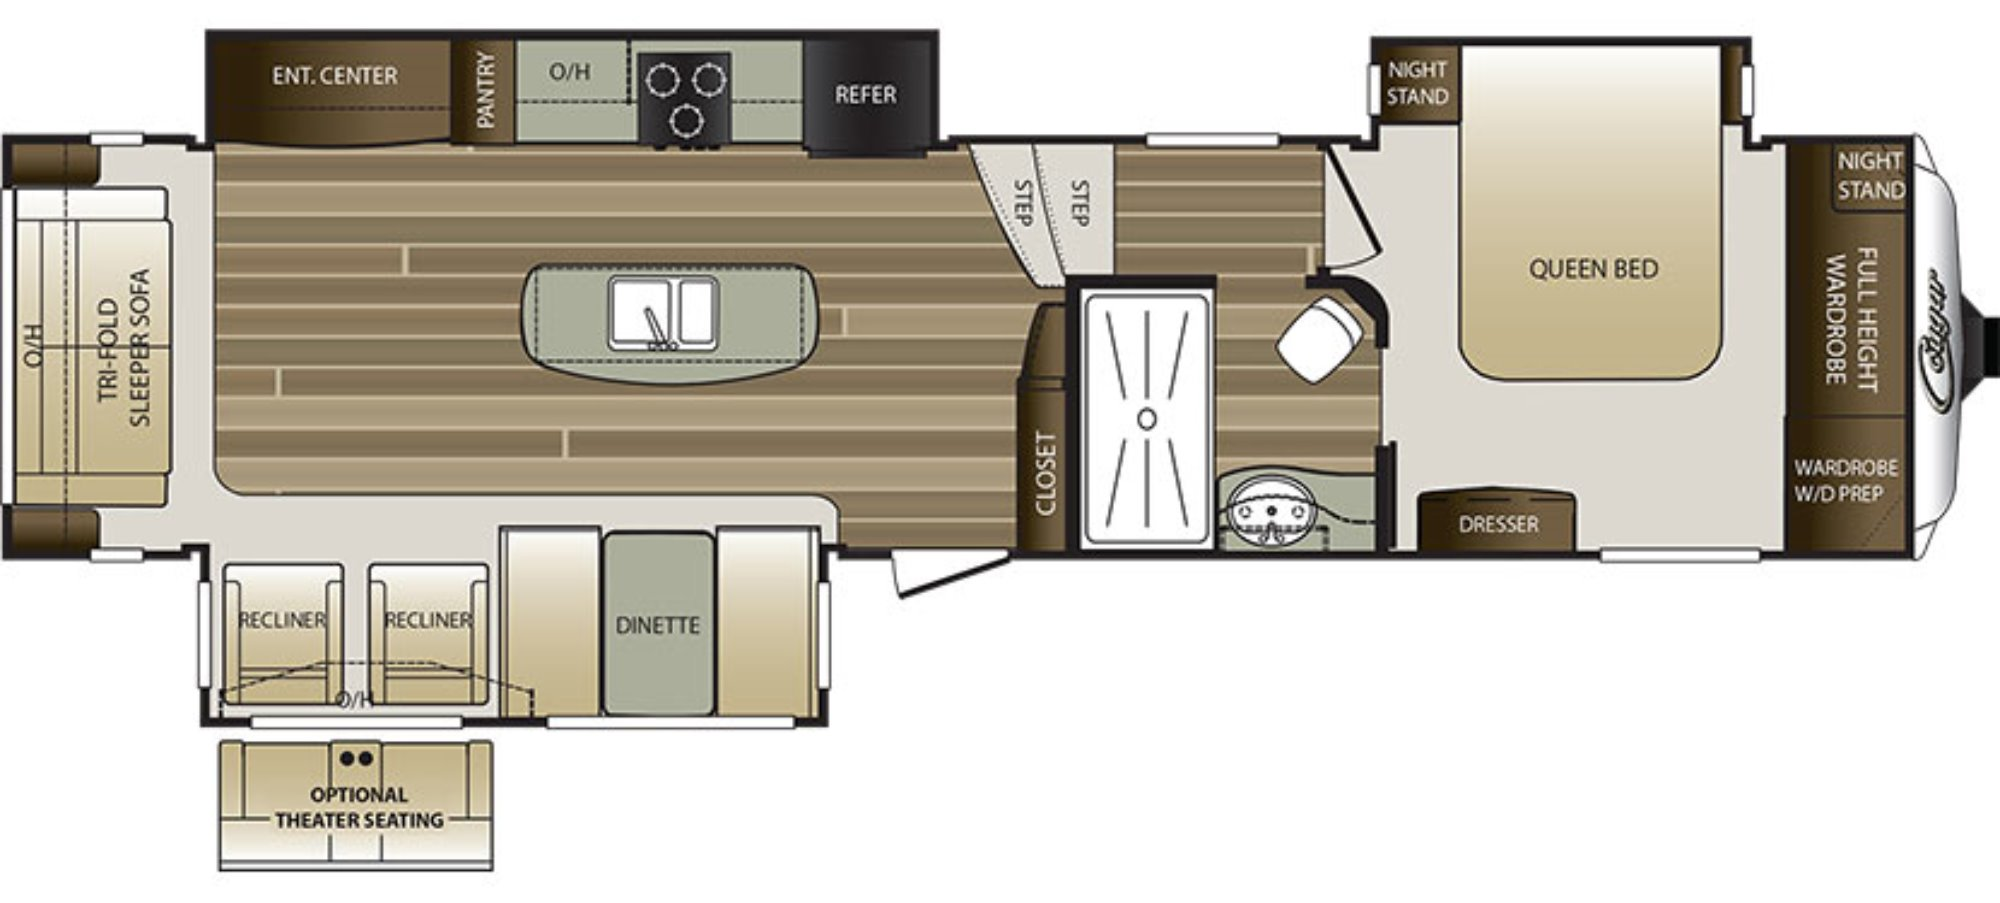 keystone cougar wiring diagrams evinrude 115 ficht diagram new 2017 333mks fifth wheel for sale